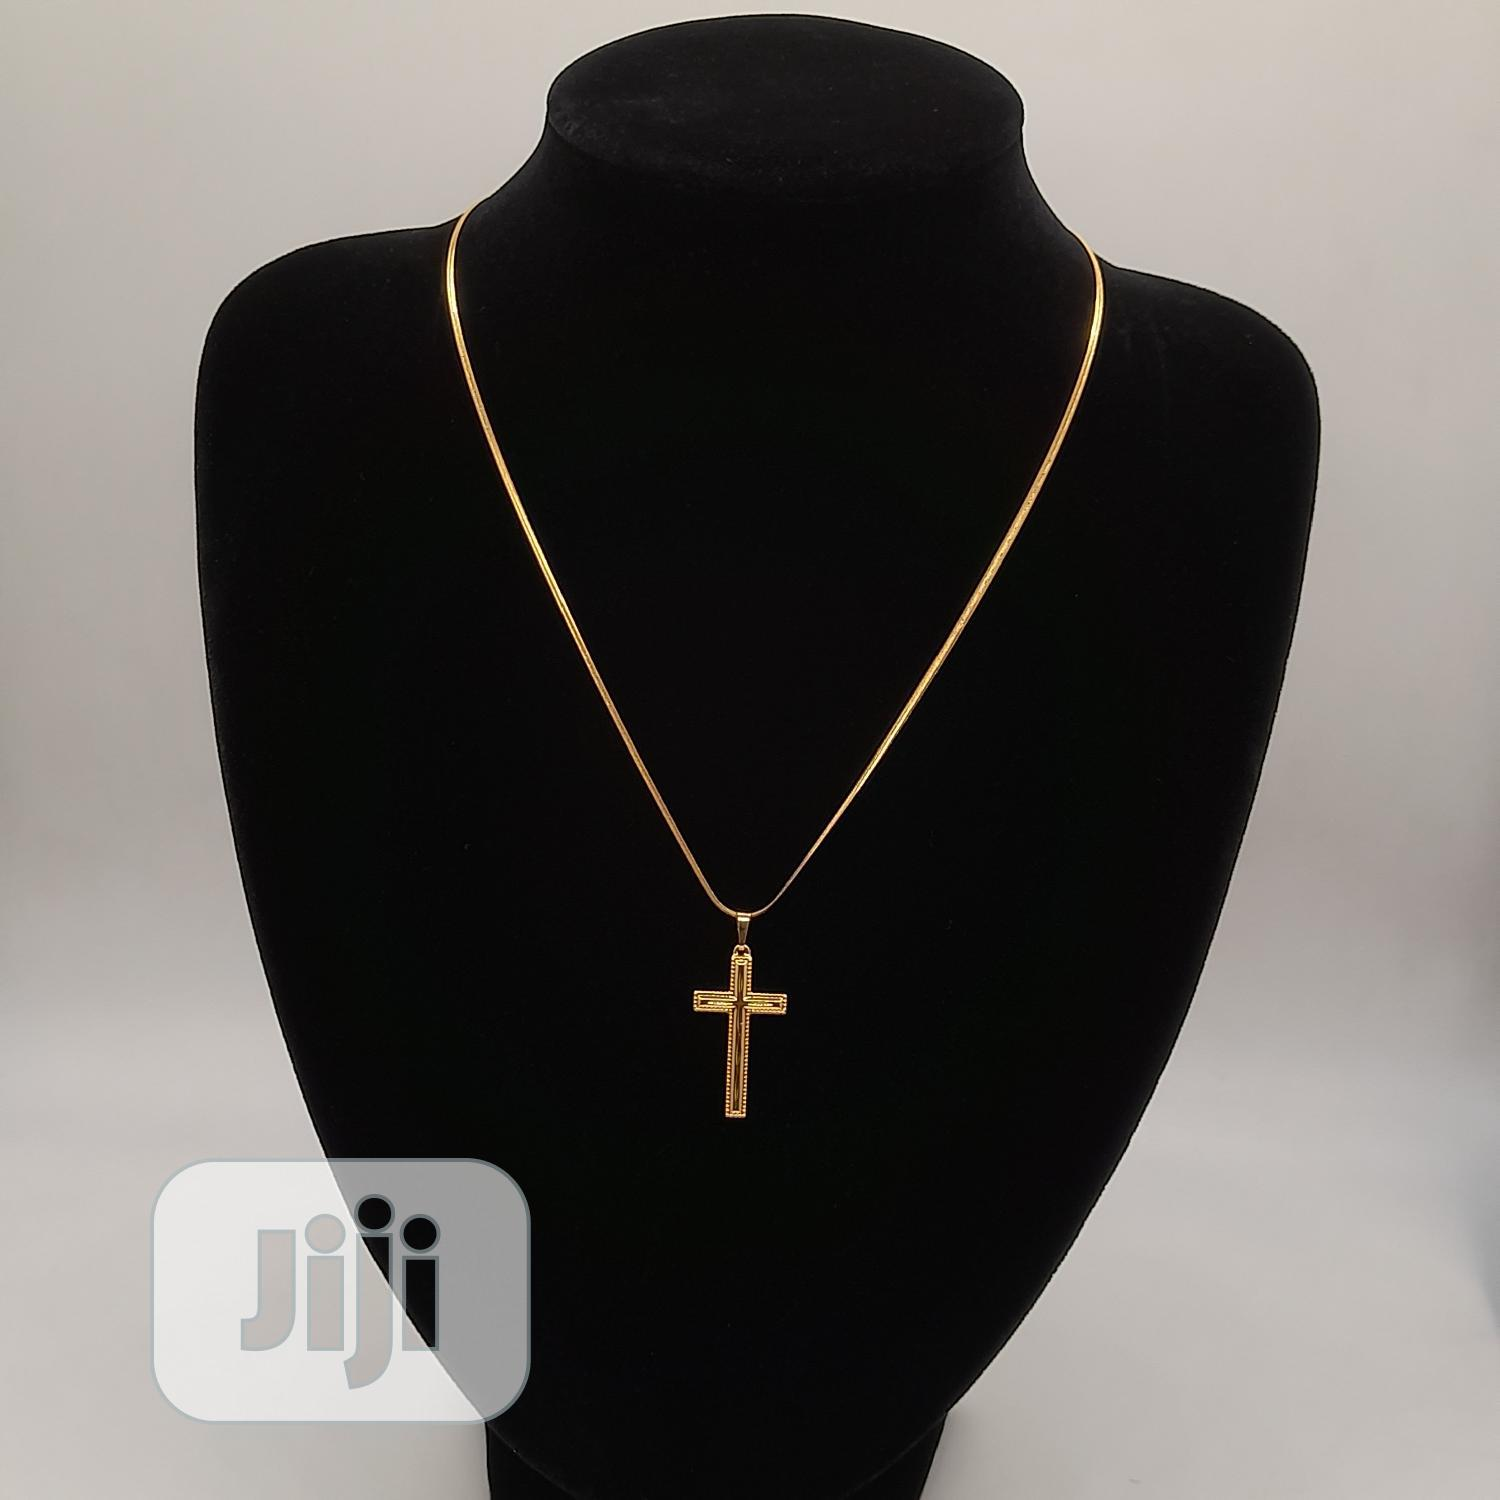 Gorgeous Unisex Steel Chain With Xuping Pendant